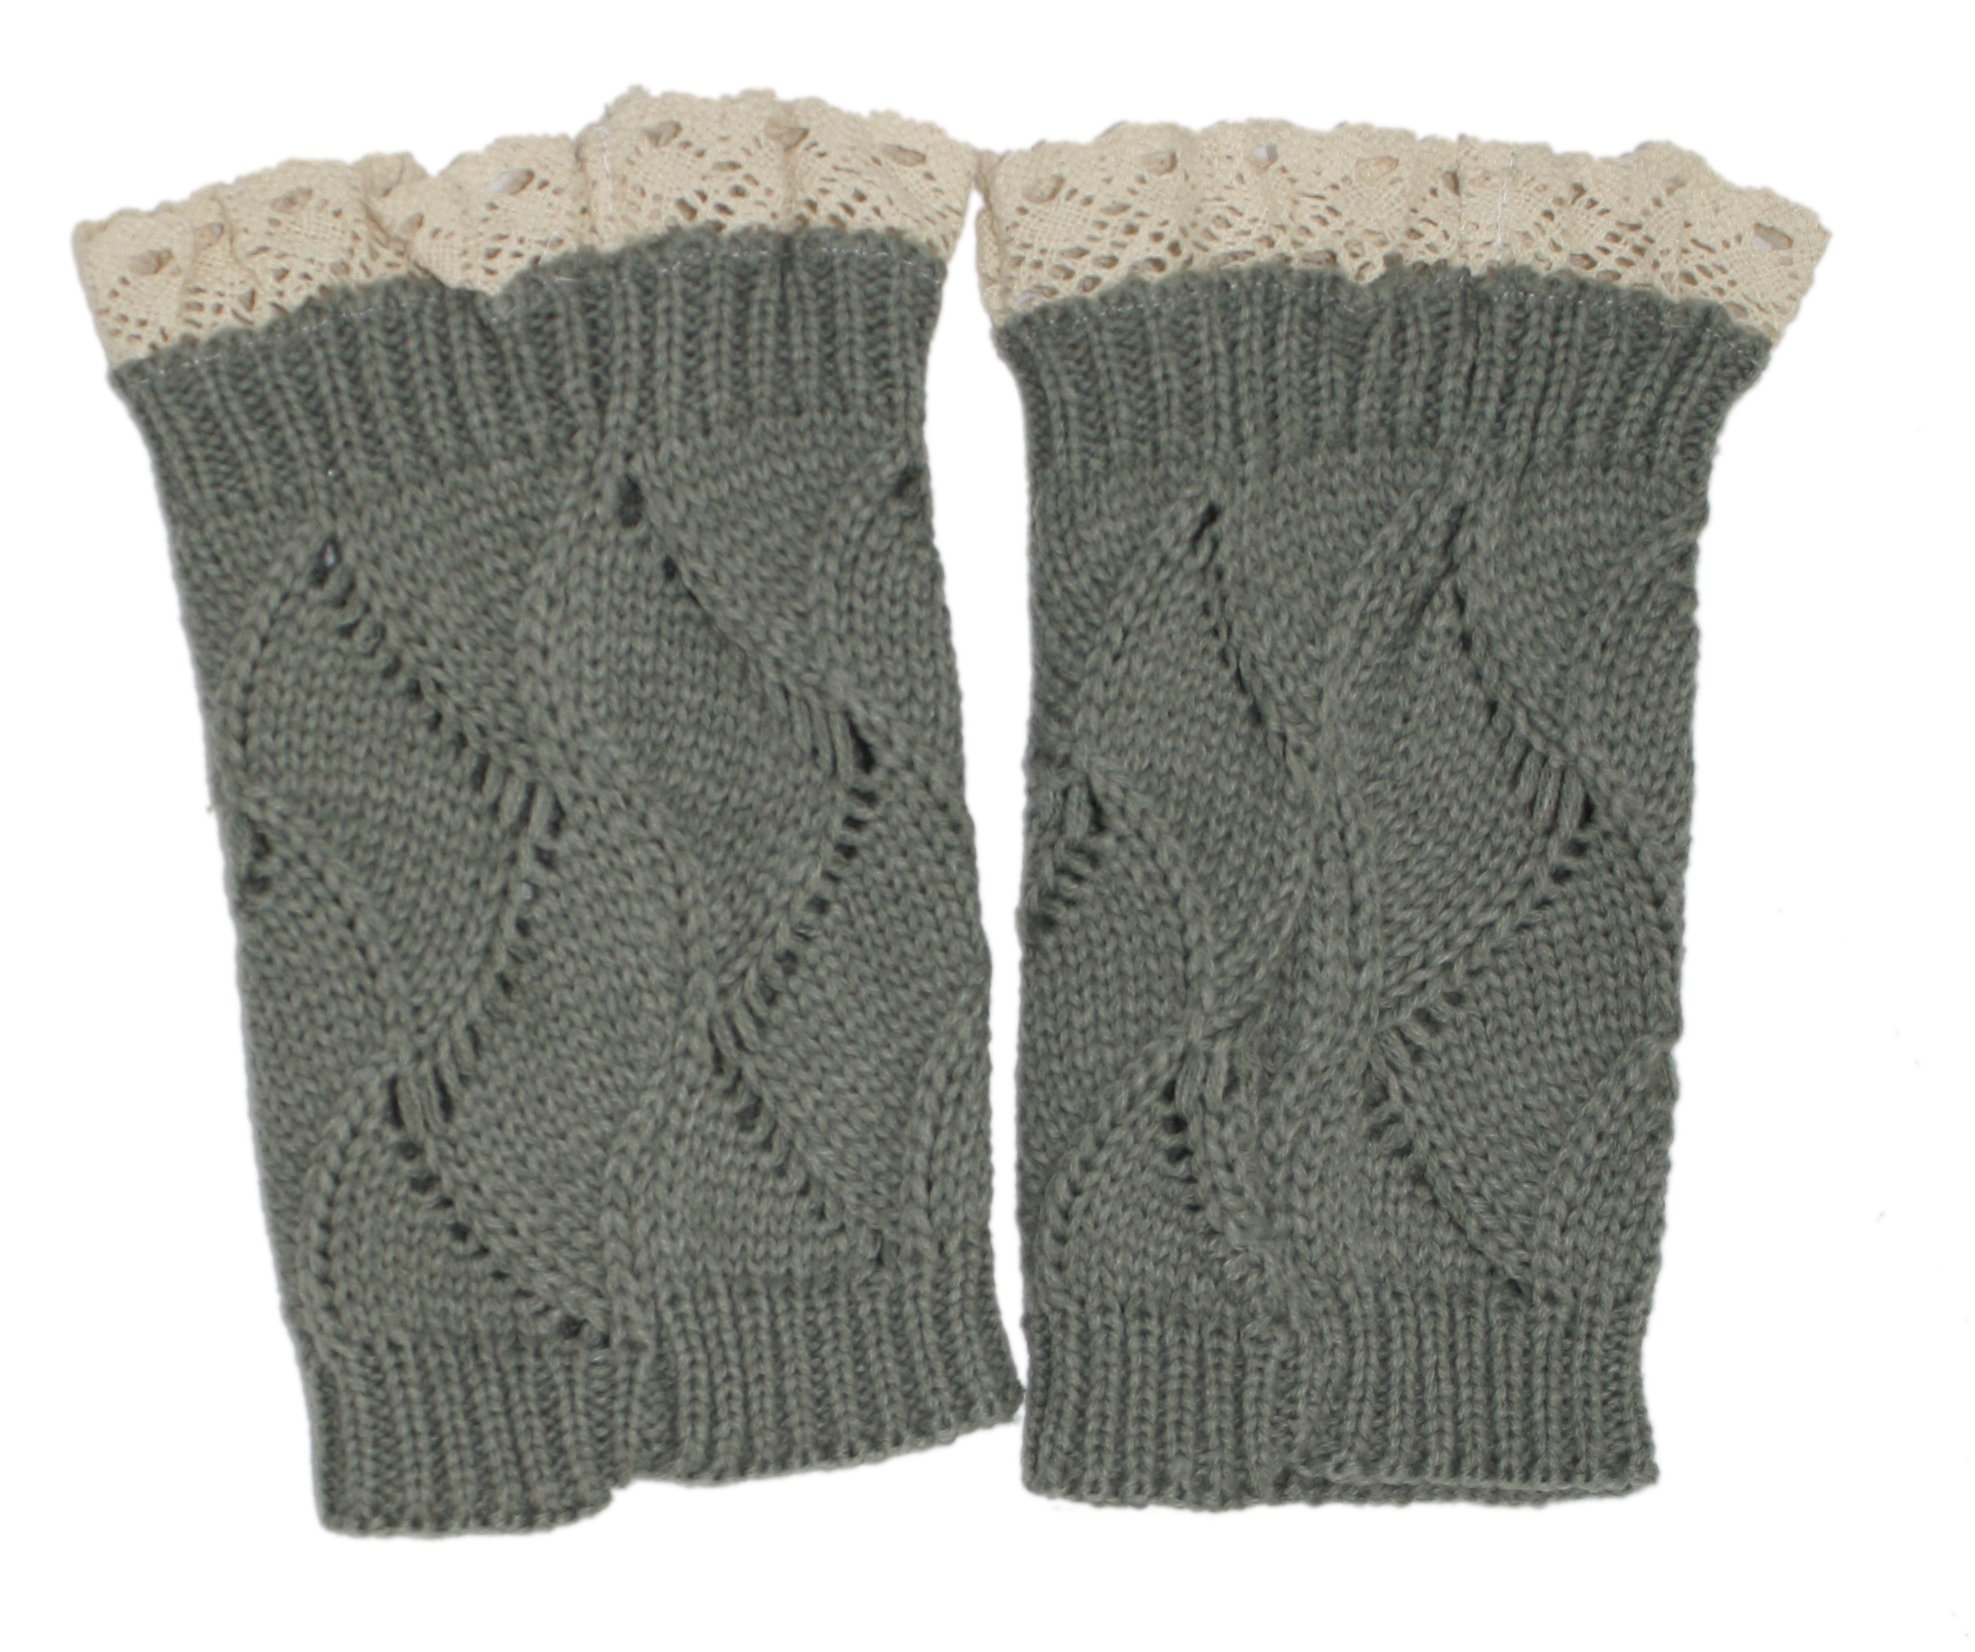 Modern Minute - Lace Top Wave Cable Knit Legwarmer Boot Topper in Grey